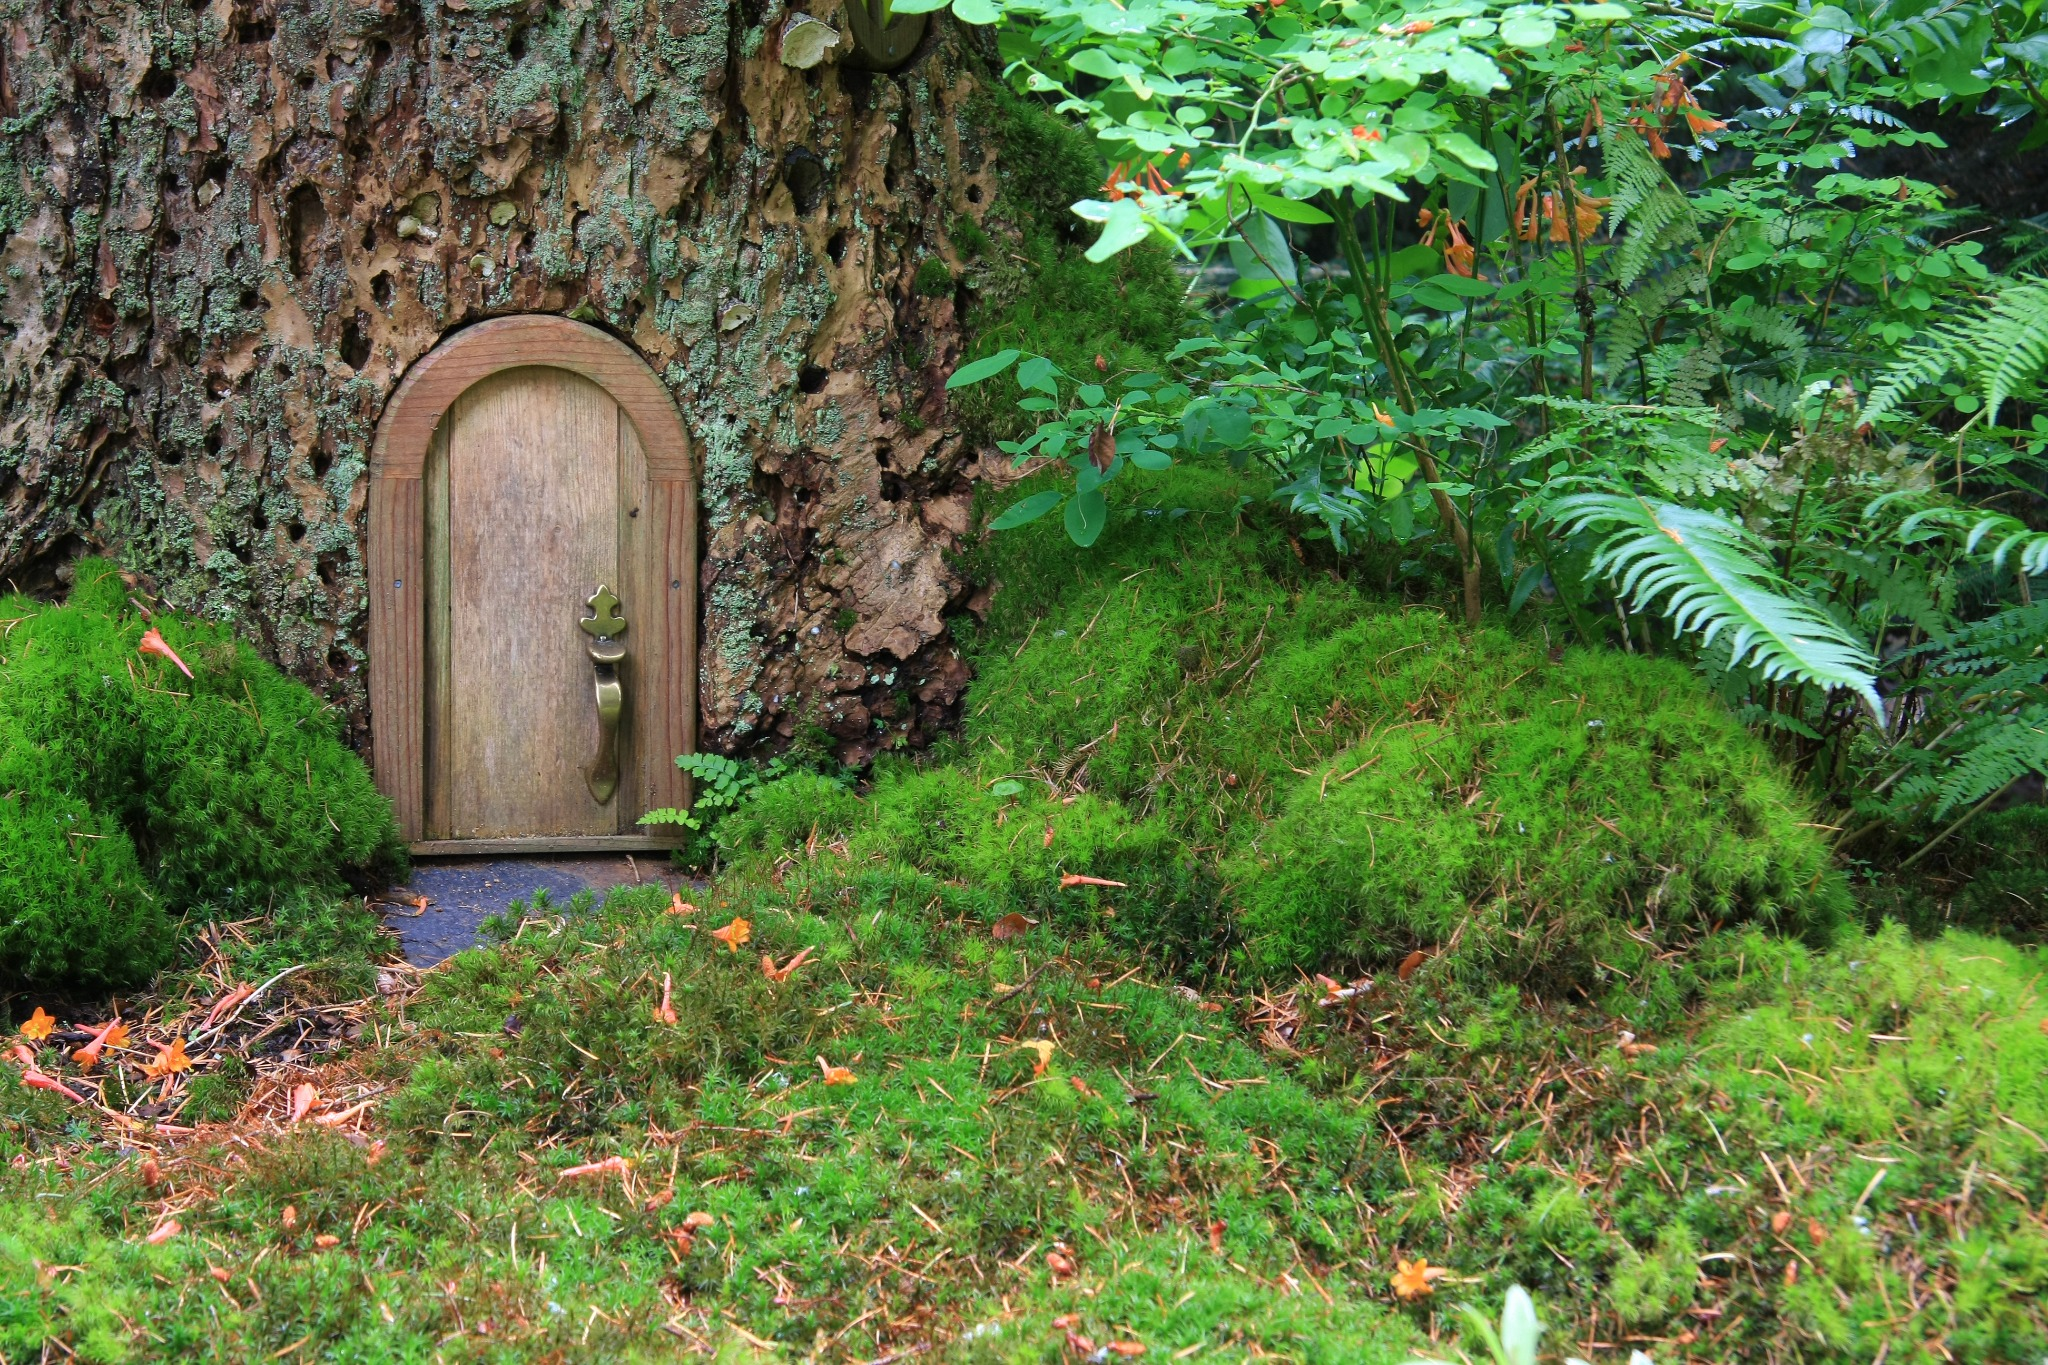 A fairy garden with a small door in a tree to celebrate Beltane.